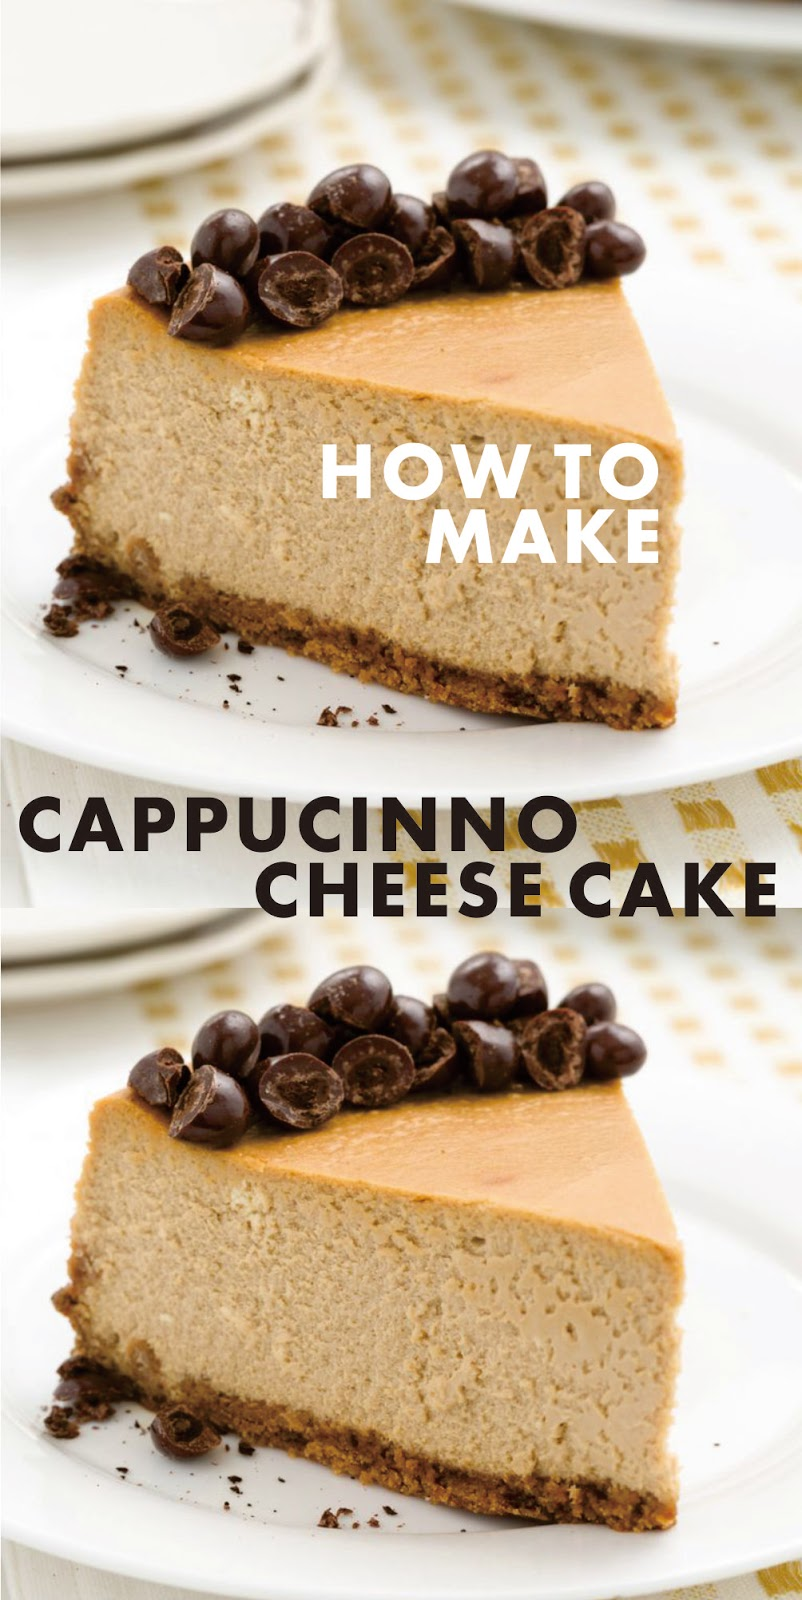 CAPPUCINO CHEESE CAKE